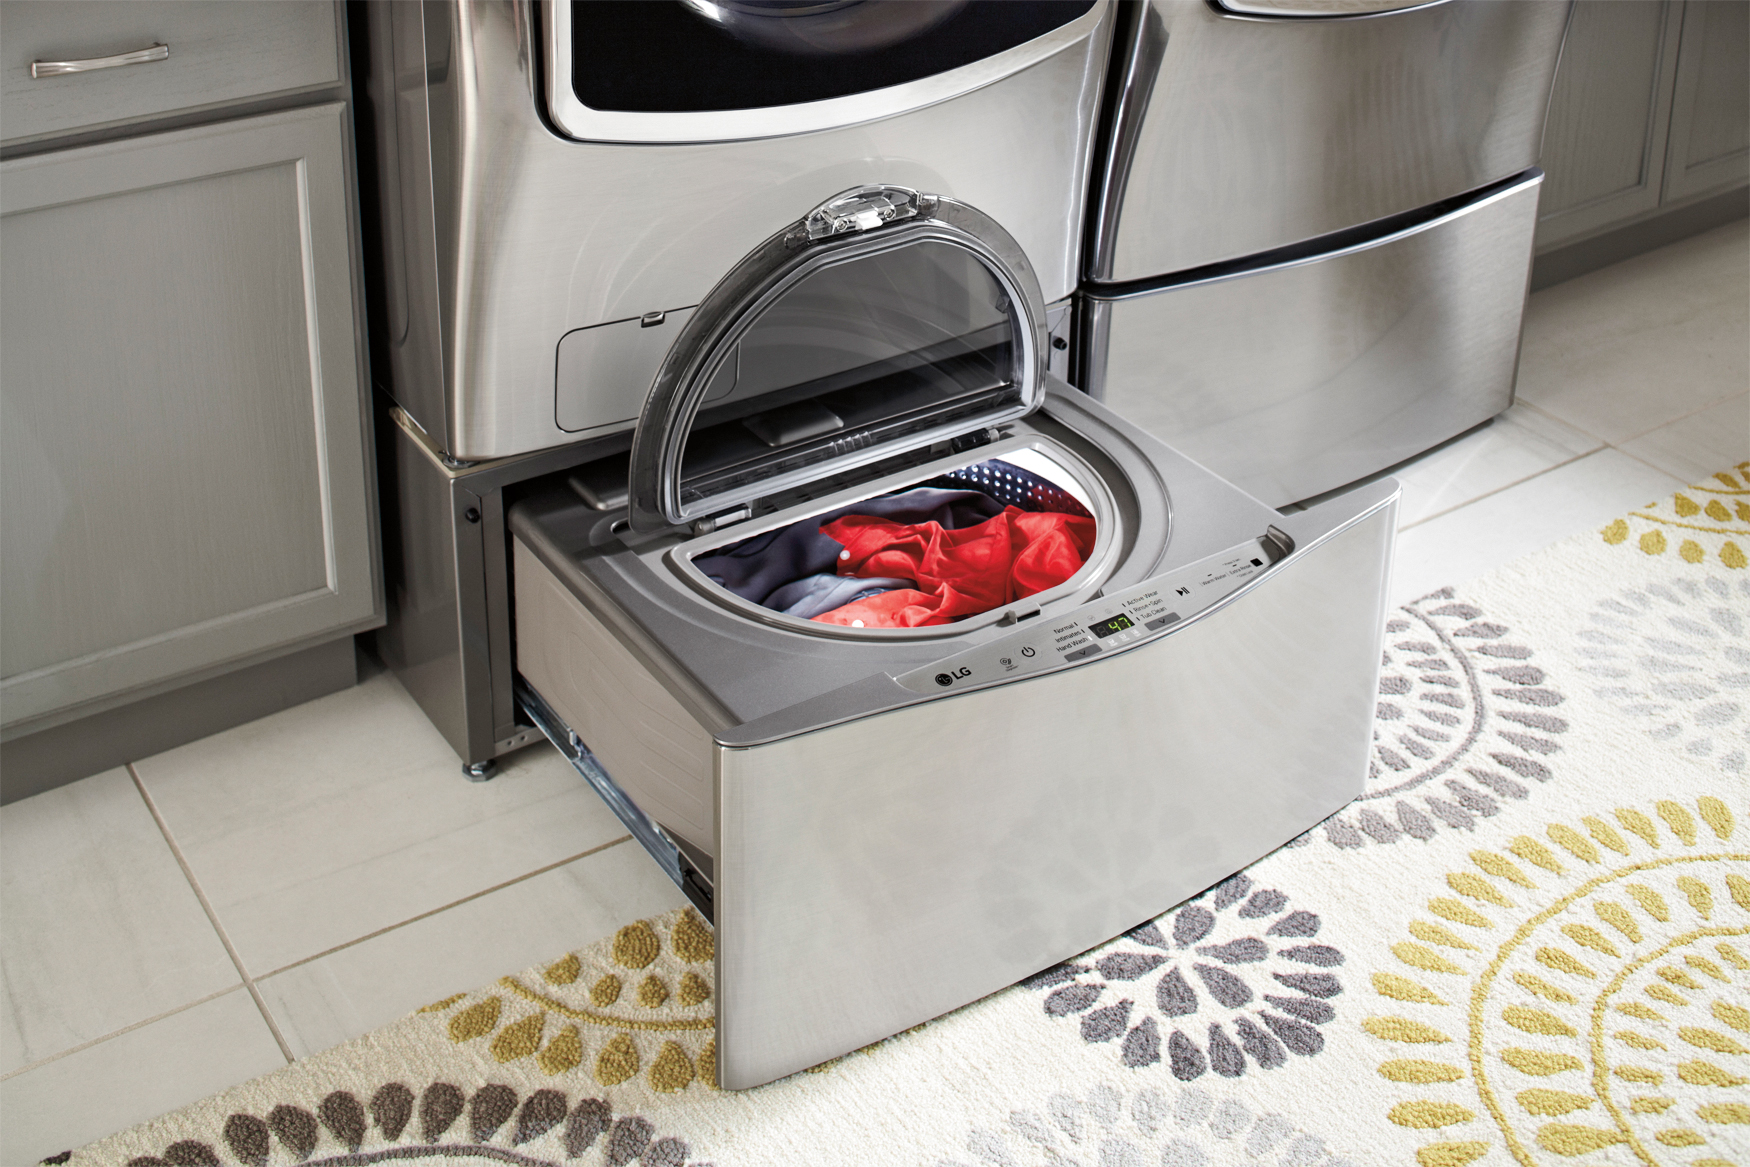 Wash two loads at once with LG Front Load SideKick Washer